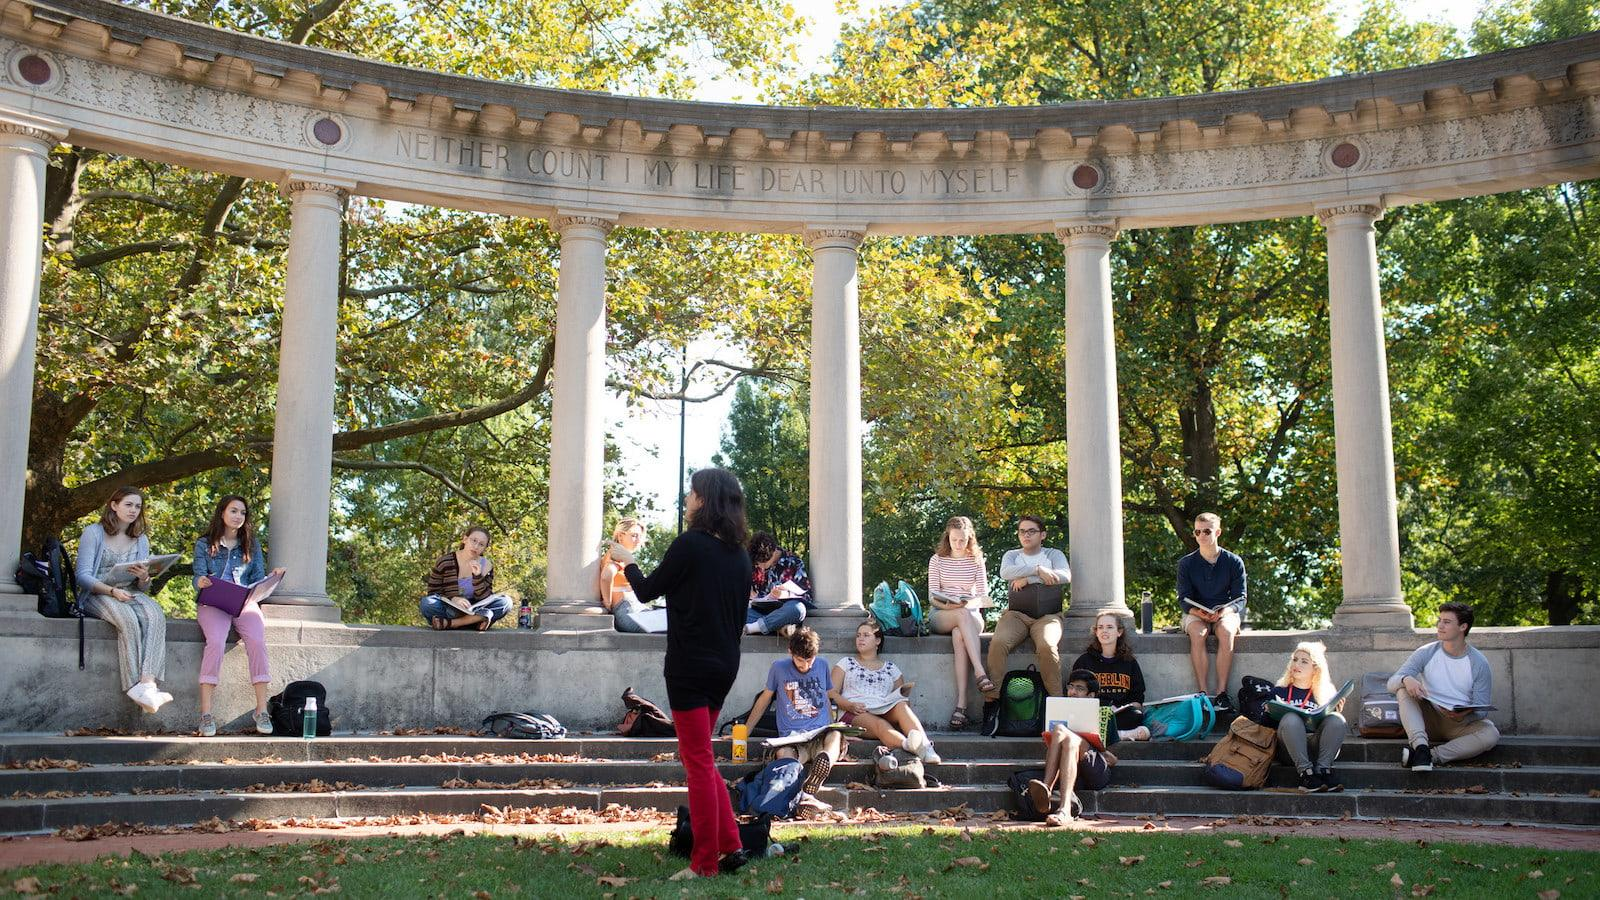 Ivana Di Siena teaching a class at the Memorial Arch on Tappan Square.